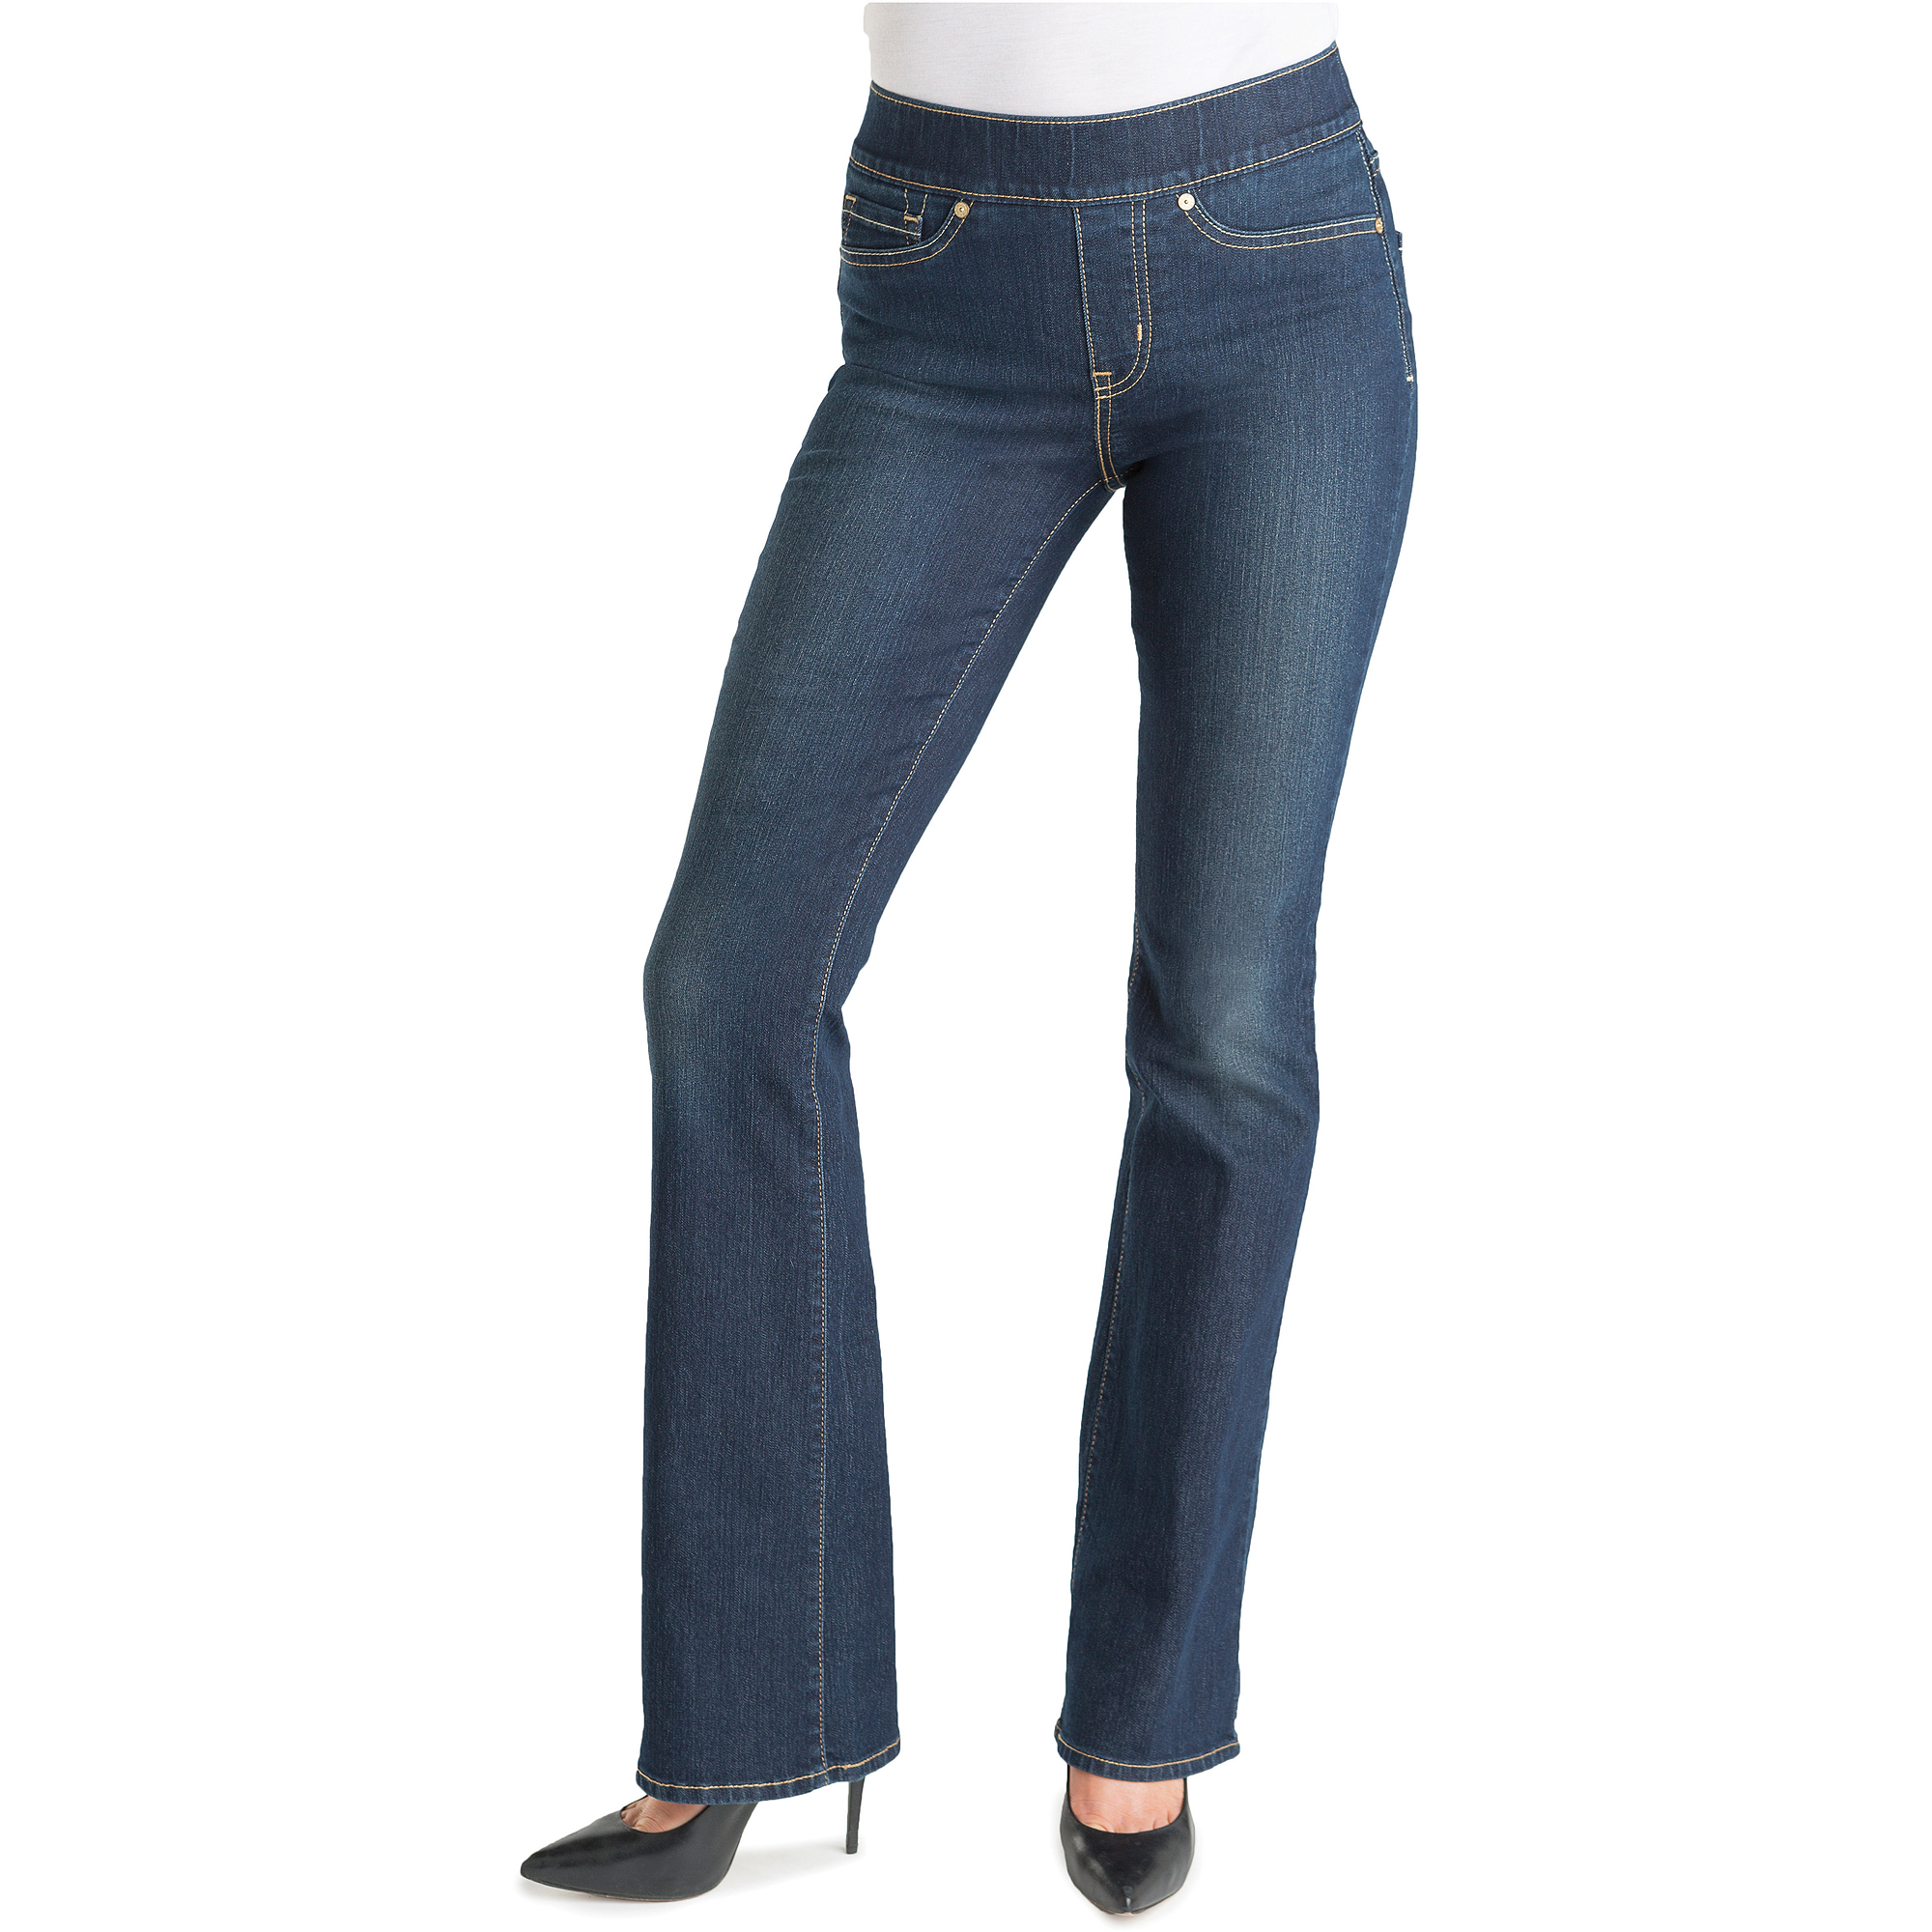 pull on jeans womenu0027s totally shaping pull on bootcut jeans - walmart.com laceoev